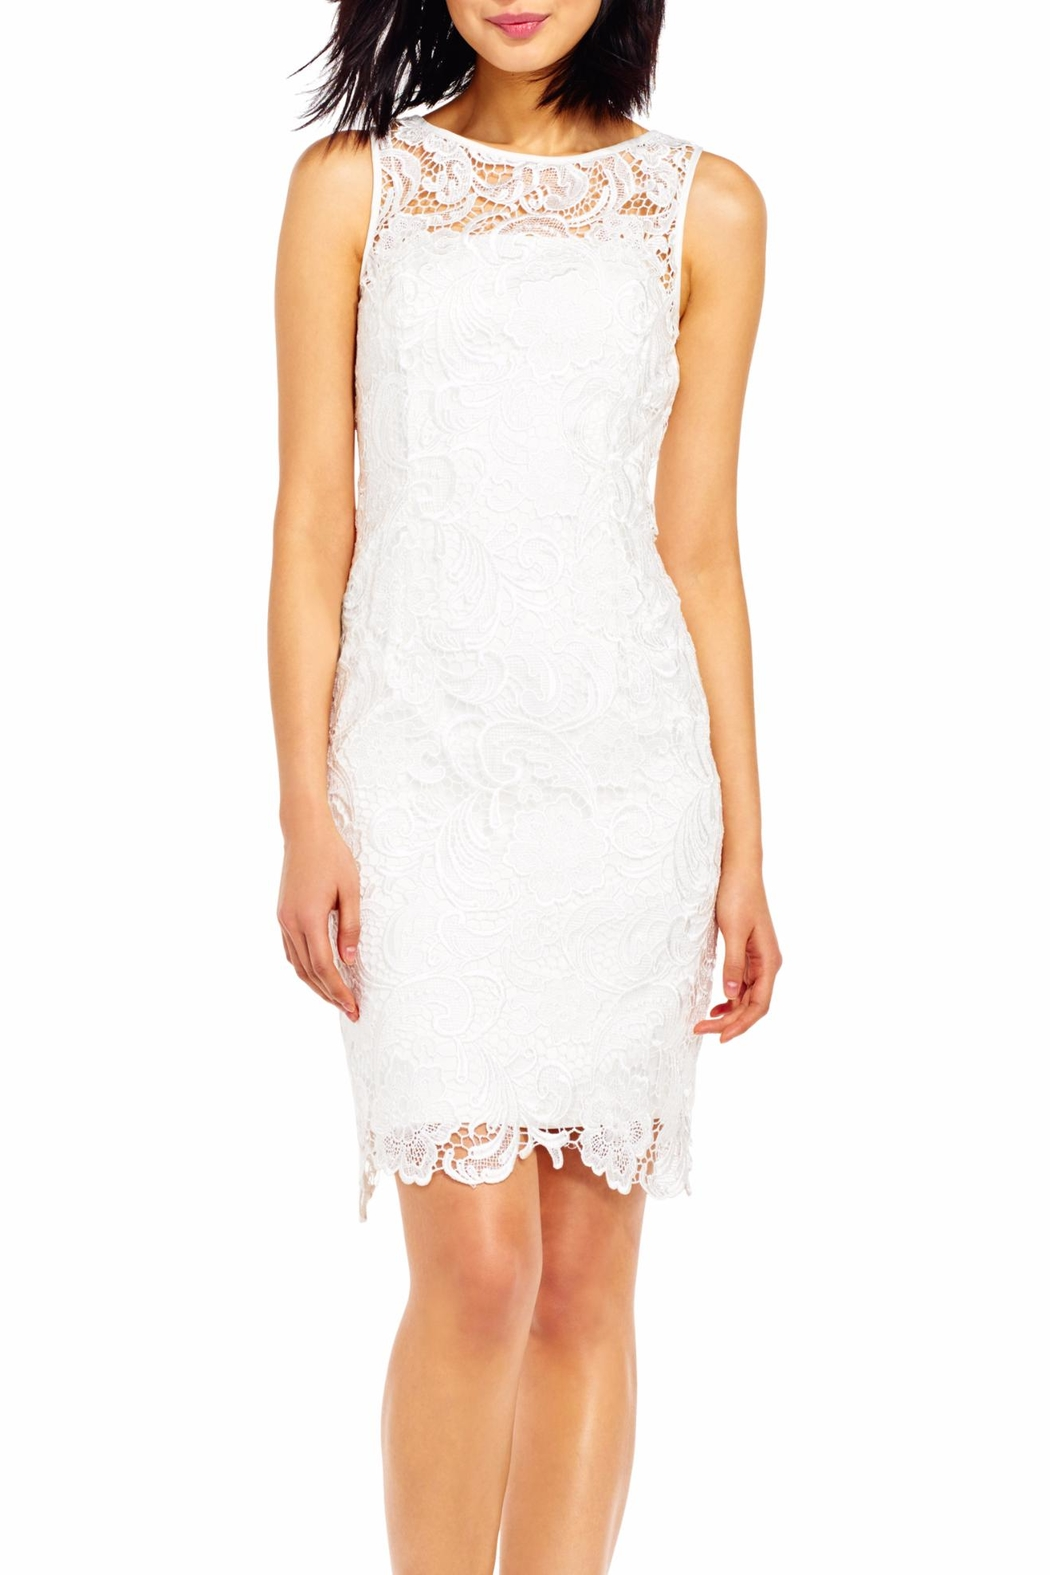 Adrianna Papell Ivory Dress - Front Cropped Image